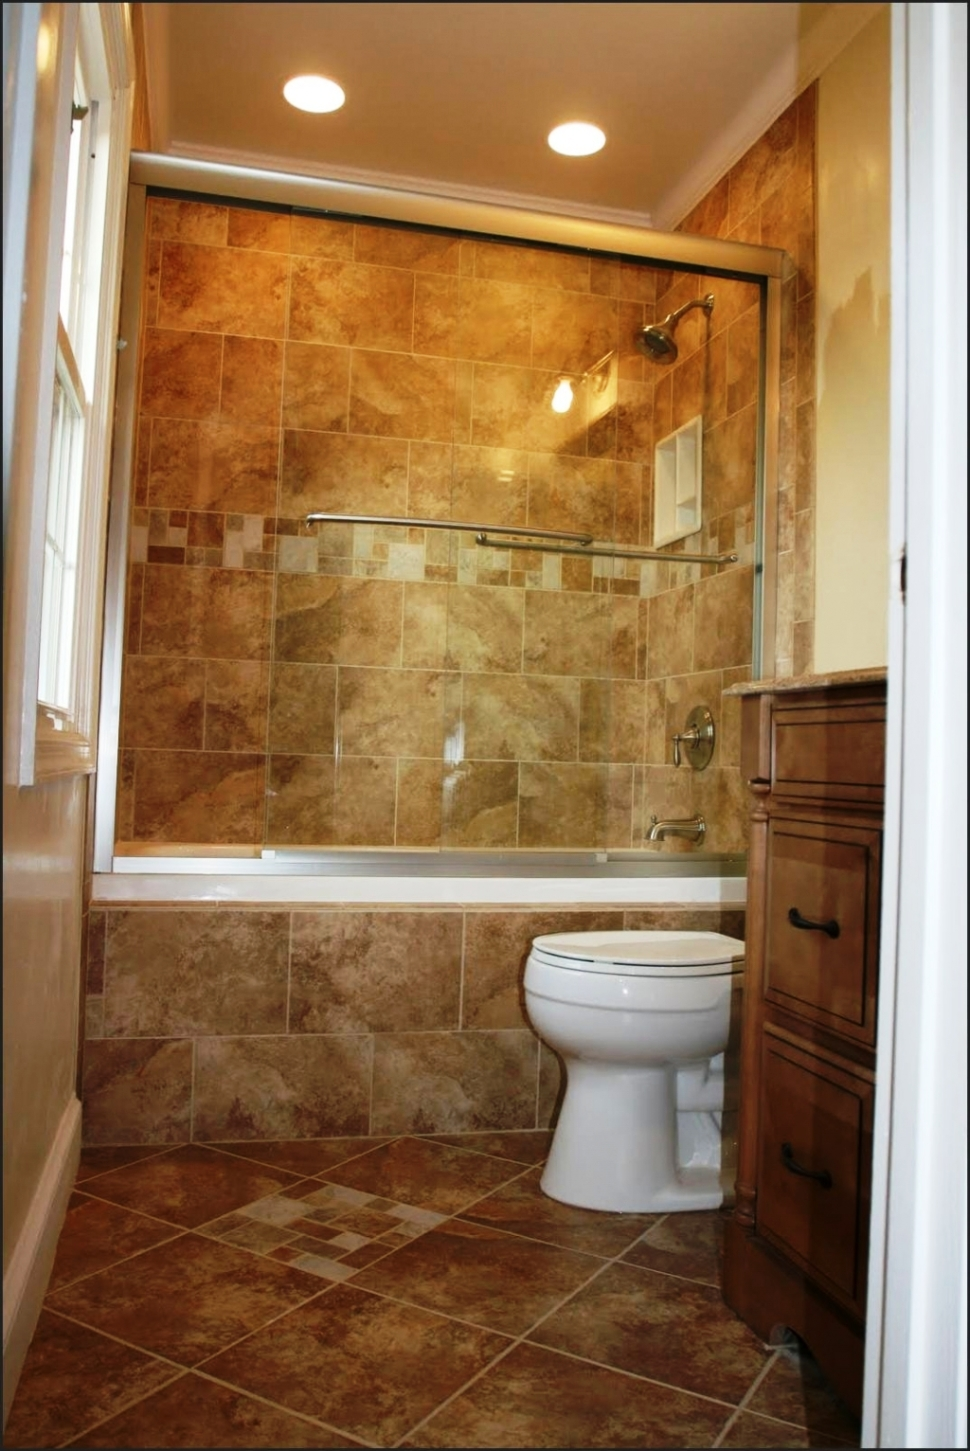 37 great ideas and pictures of modern small bathroom tiles ... on Modern:kkgewzoz5M4= Small Bathroom  id=52569